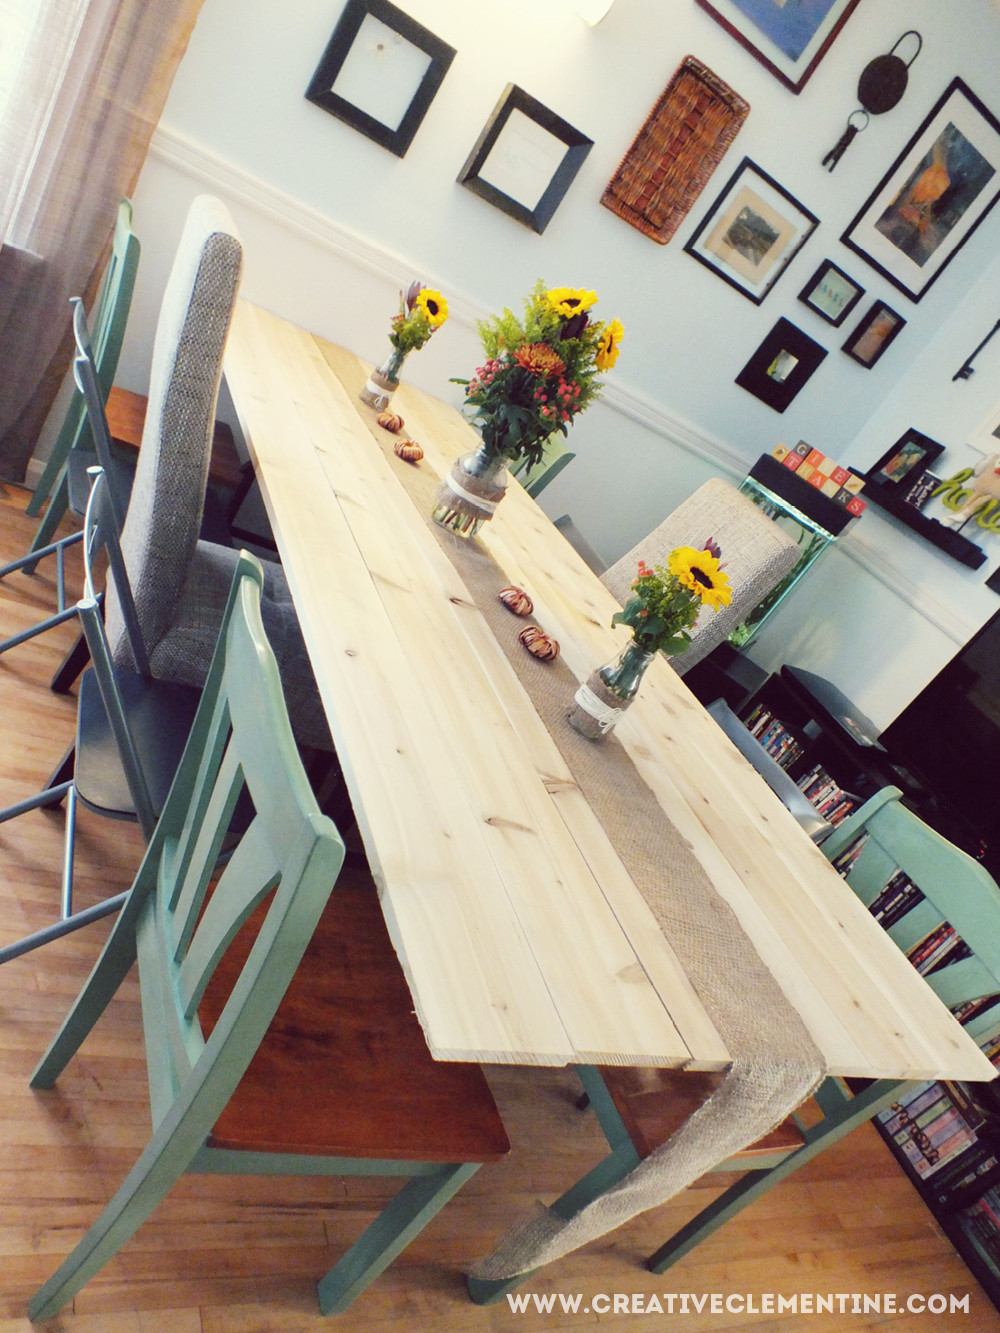 Wall Mounted Kitchen Tables  DIY Wall Mounted Holiday Dining Table Creative Clementine